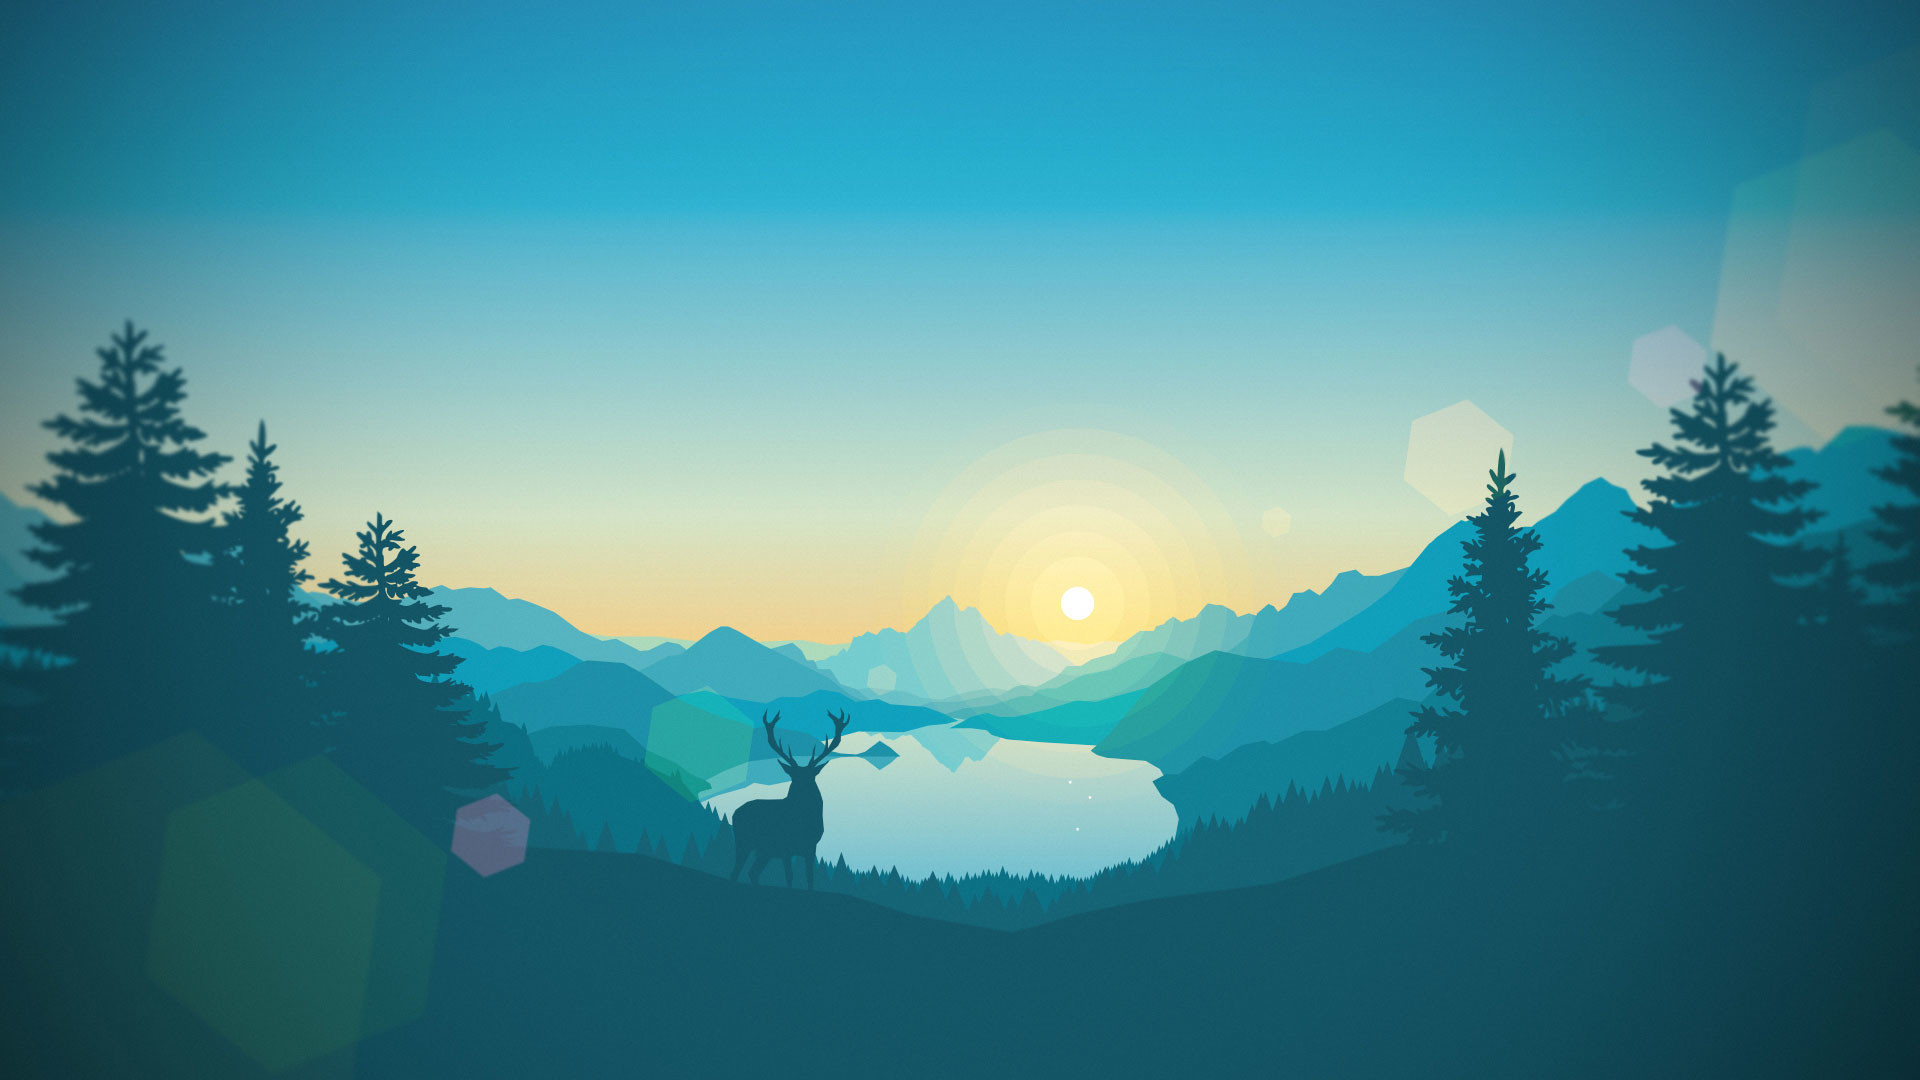 1920x1080 Firewatch 4K Wallpaper | Firewatch 1080p Wallpaper ...